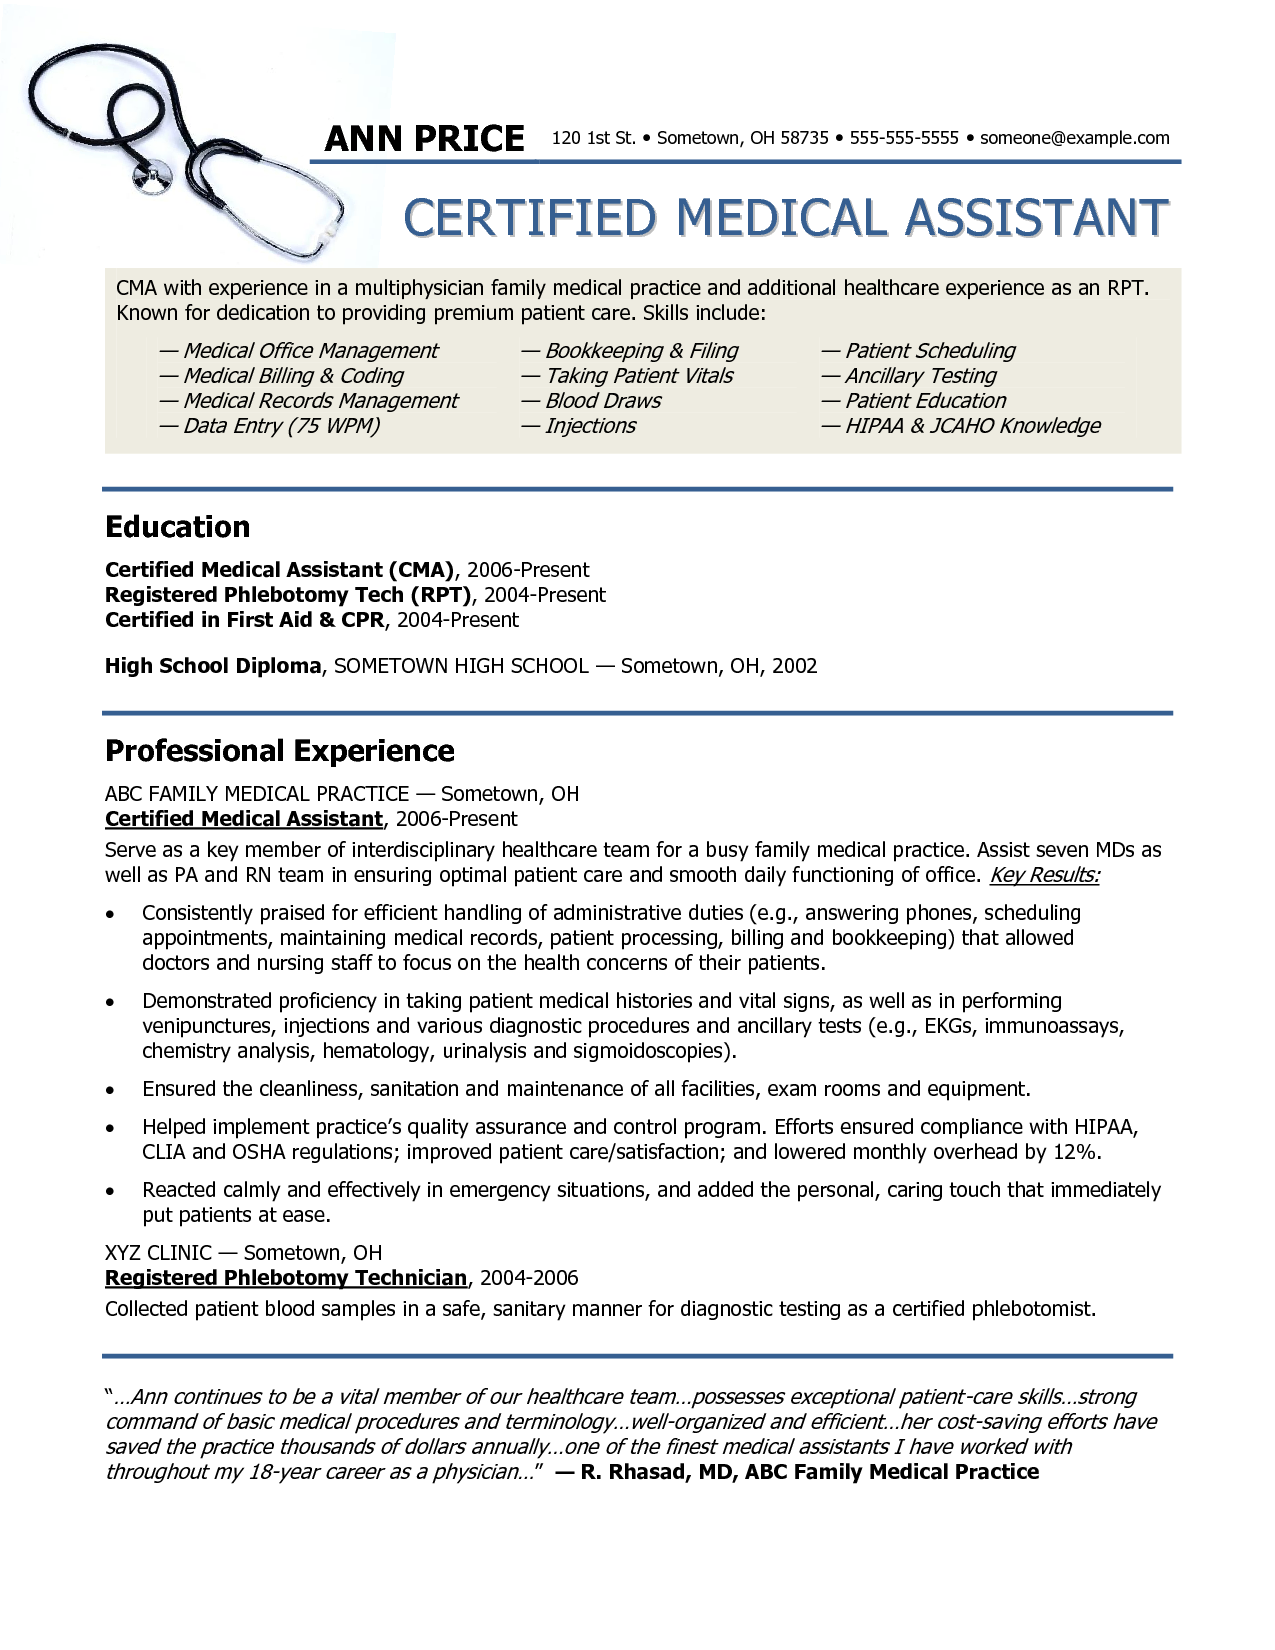 resume examples example of medical assistant resume regular medical assistant - Medical Assistant Sample Resume